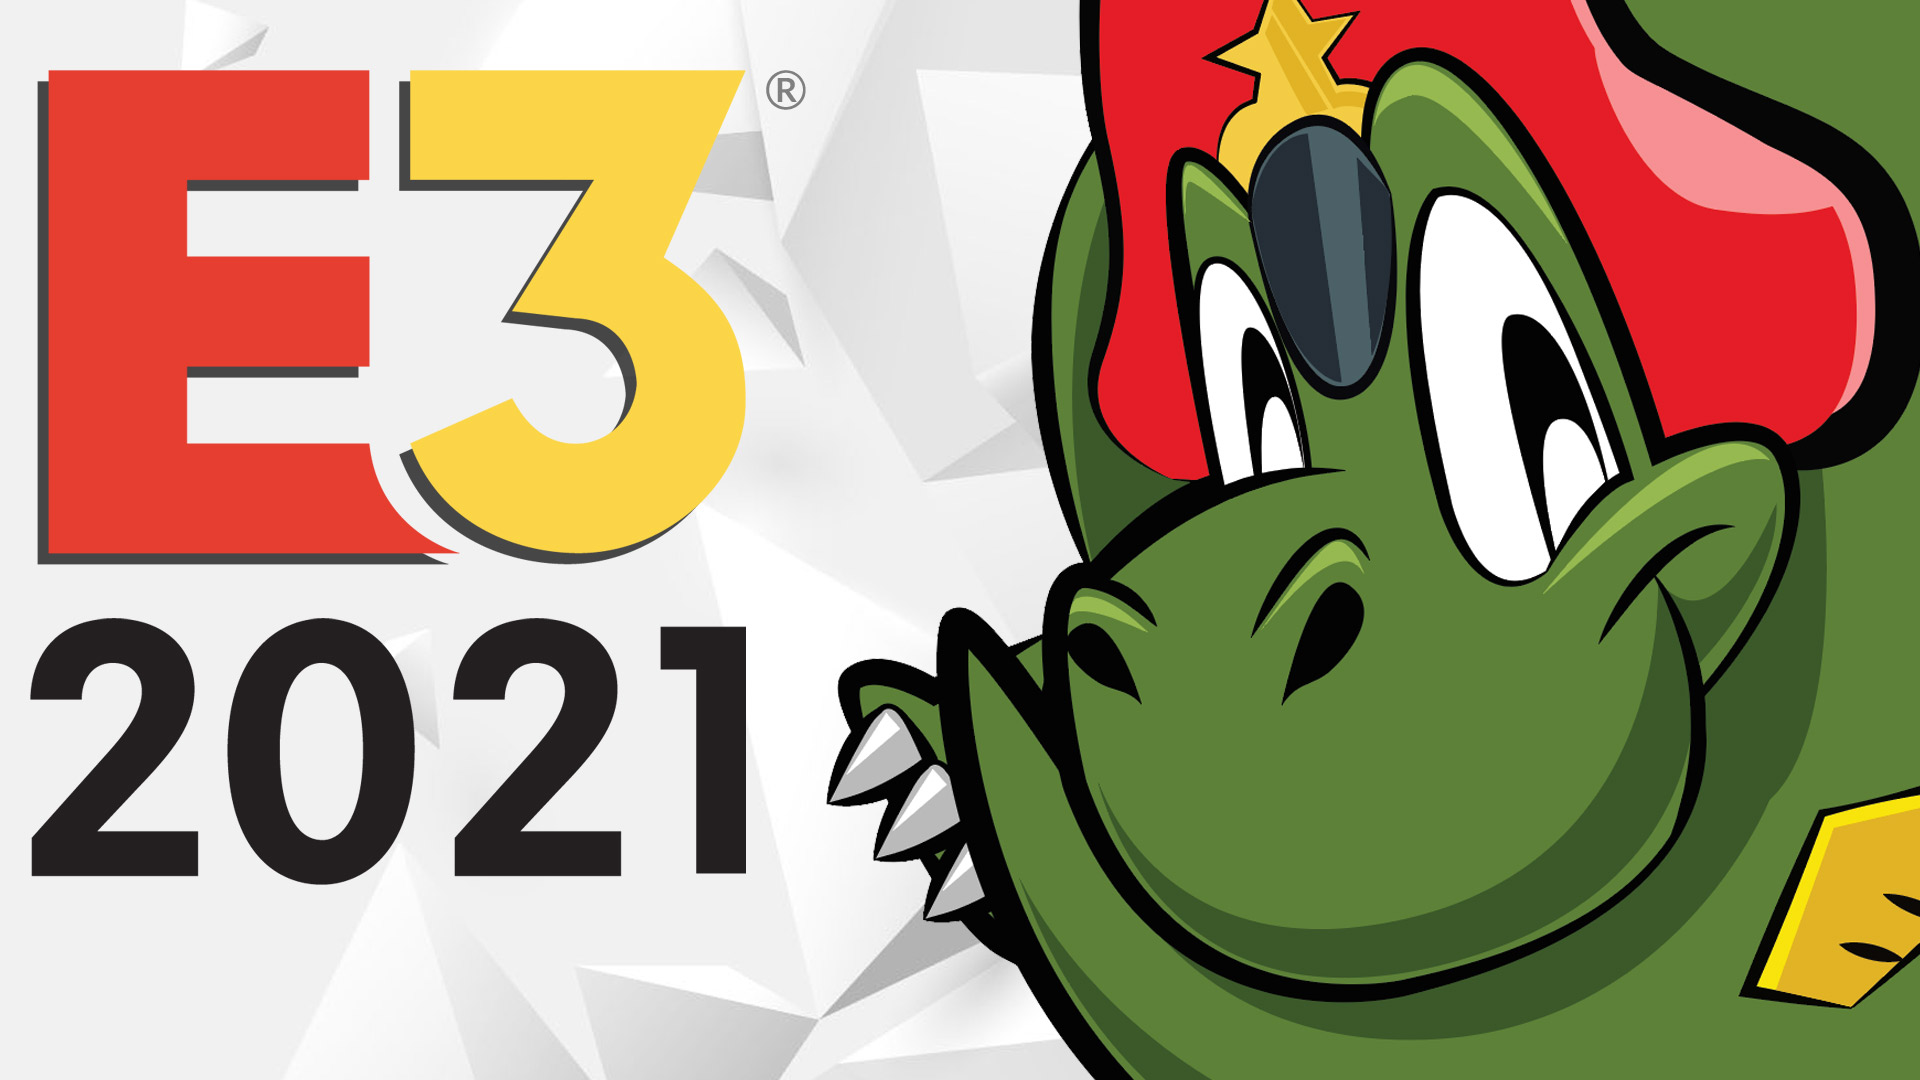 E3 2021: Back from the Dead – And Still Relevant